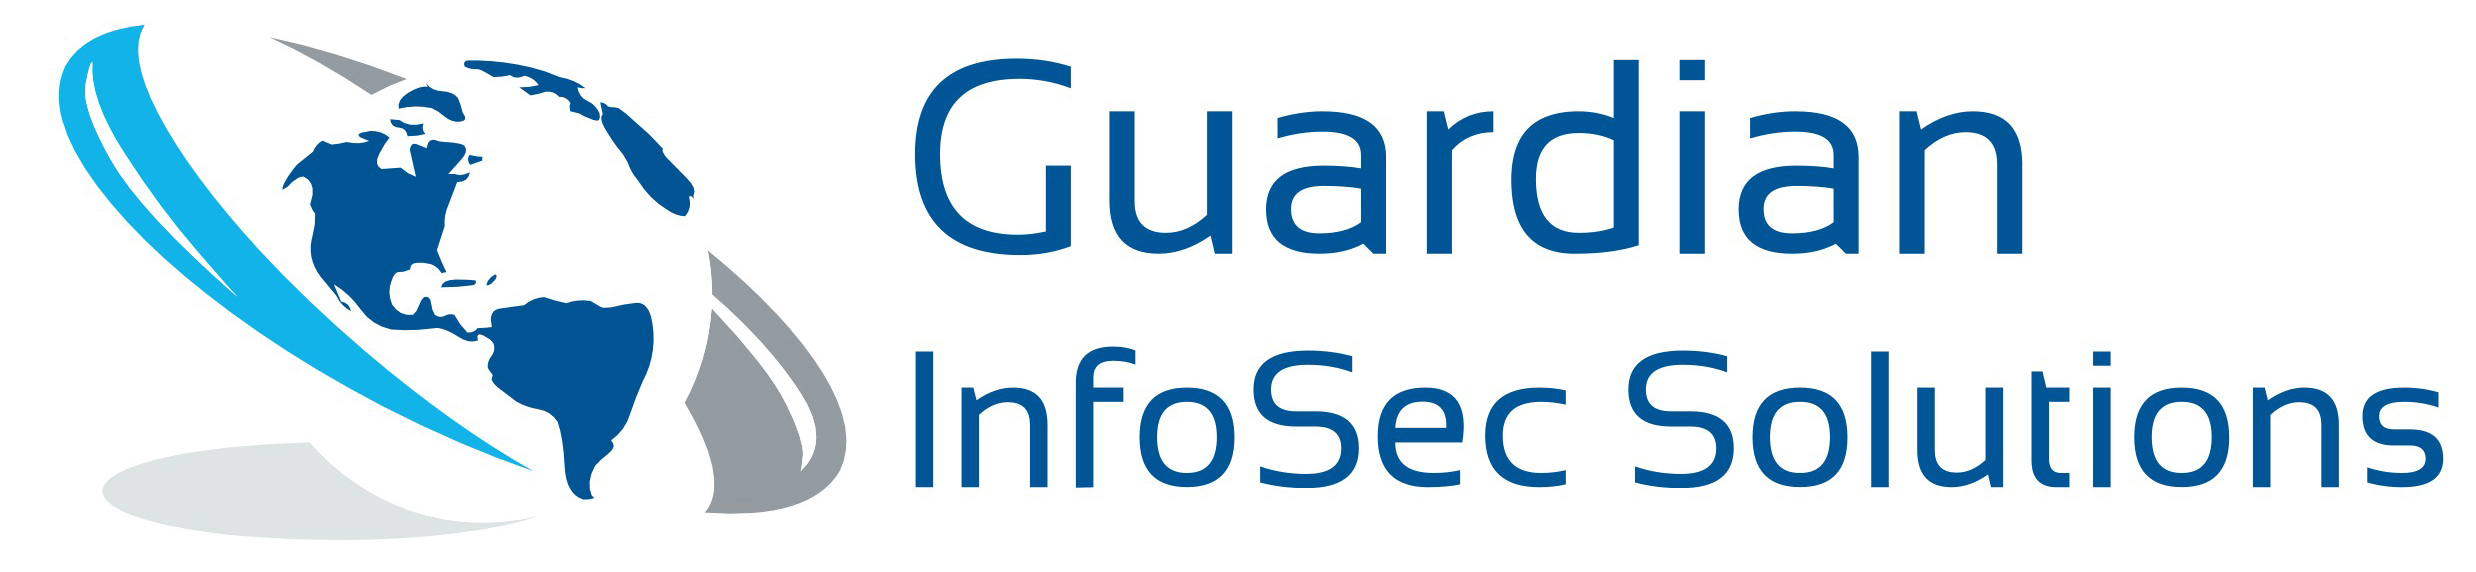 Guardian InfoSec Solutions